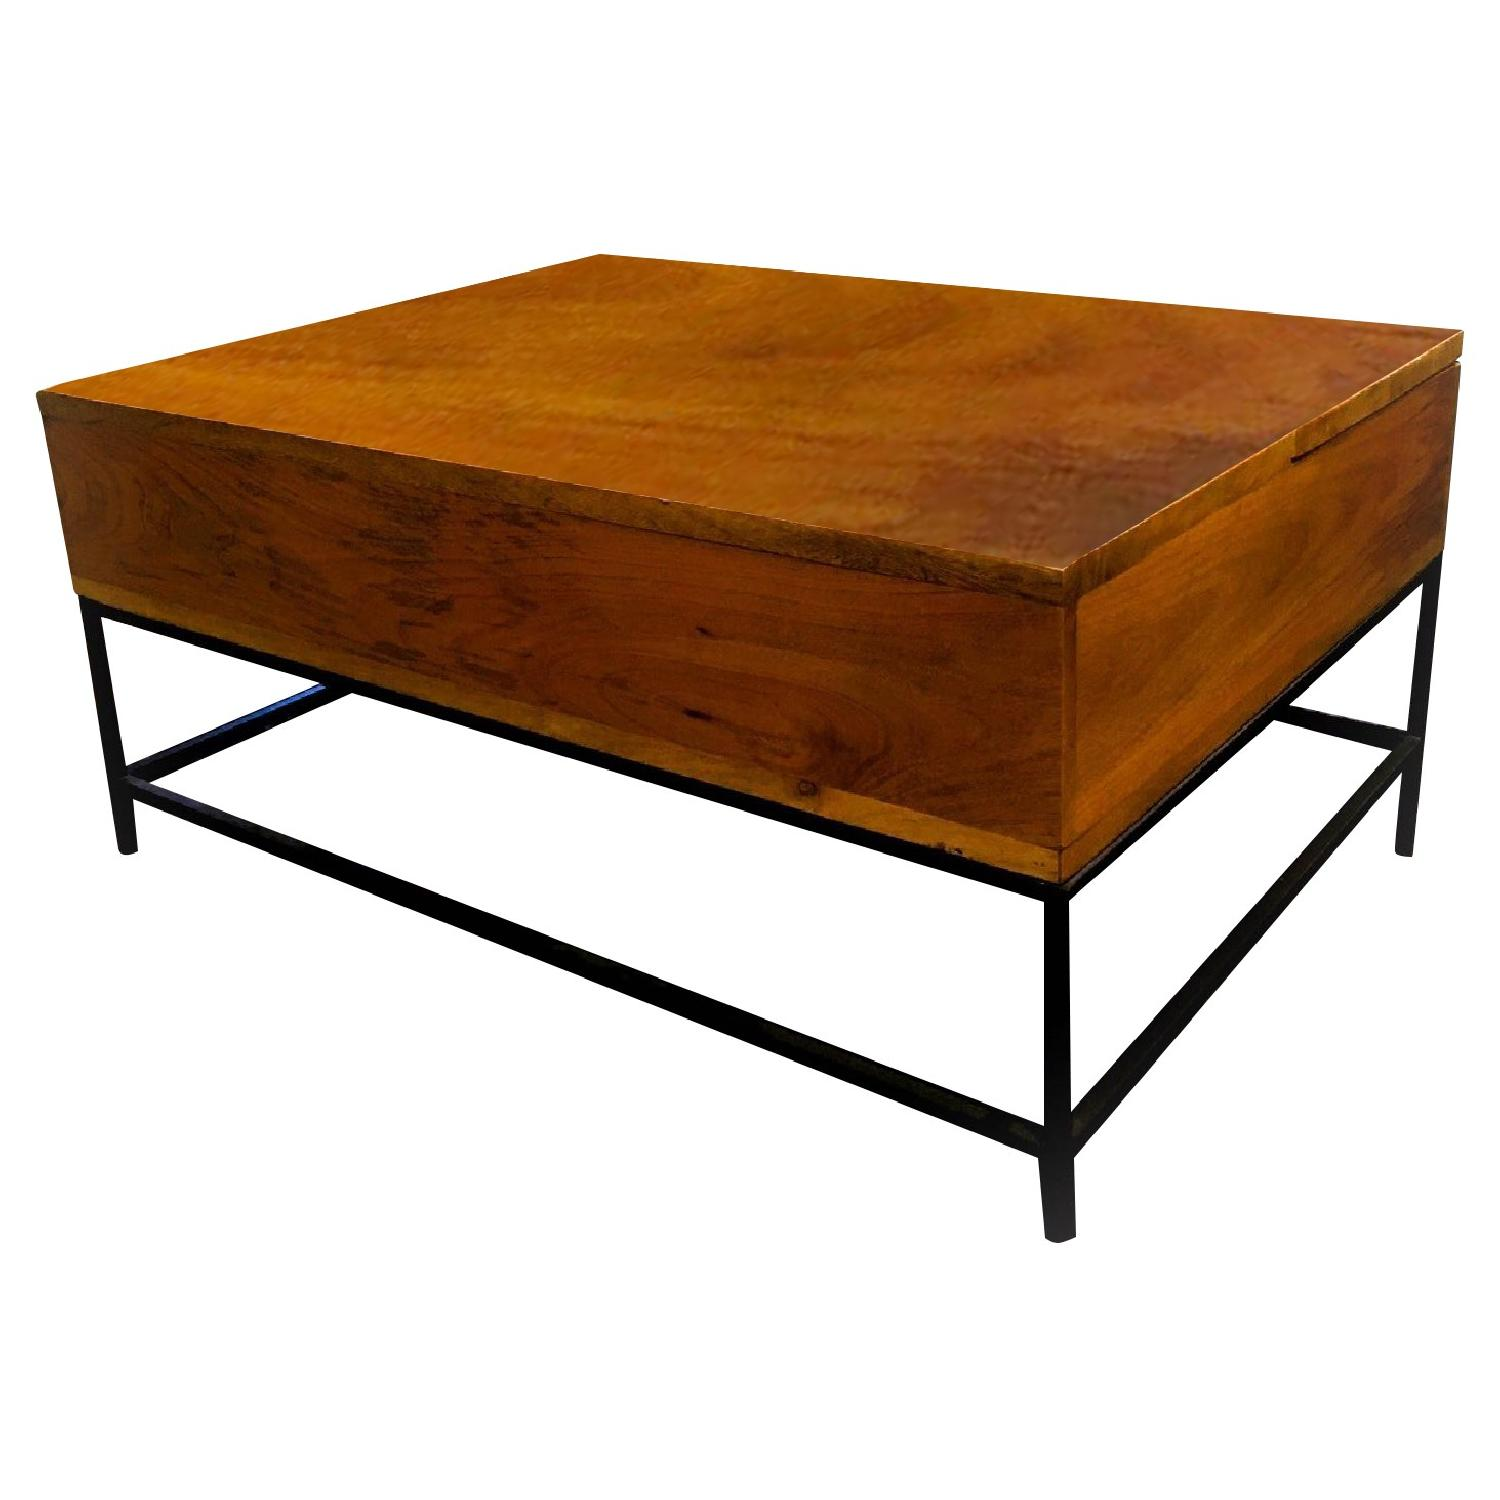 West Elm Industrial Storage Coffee Table - image-0